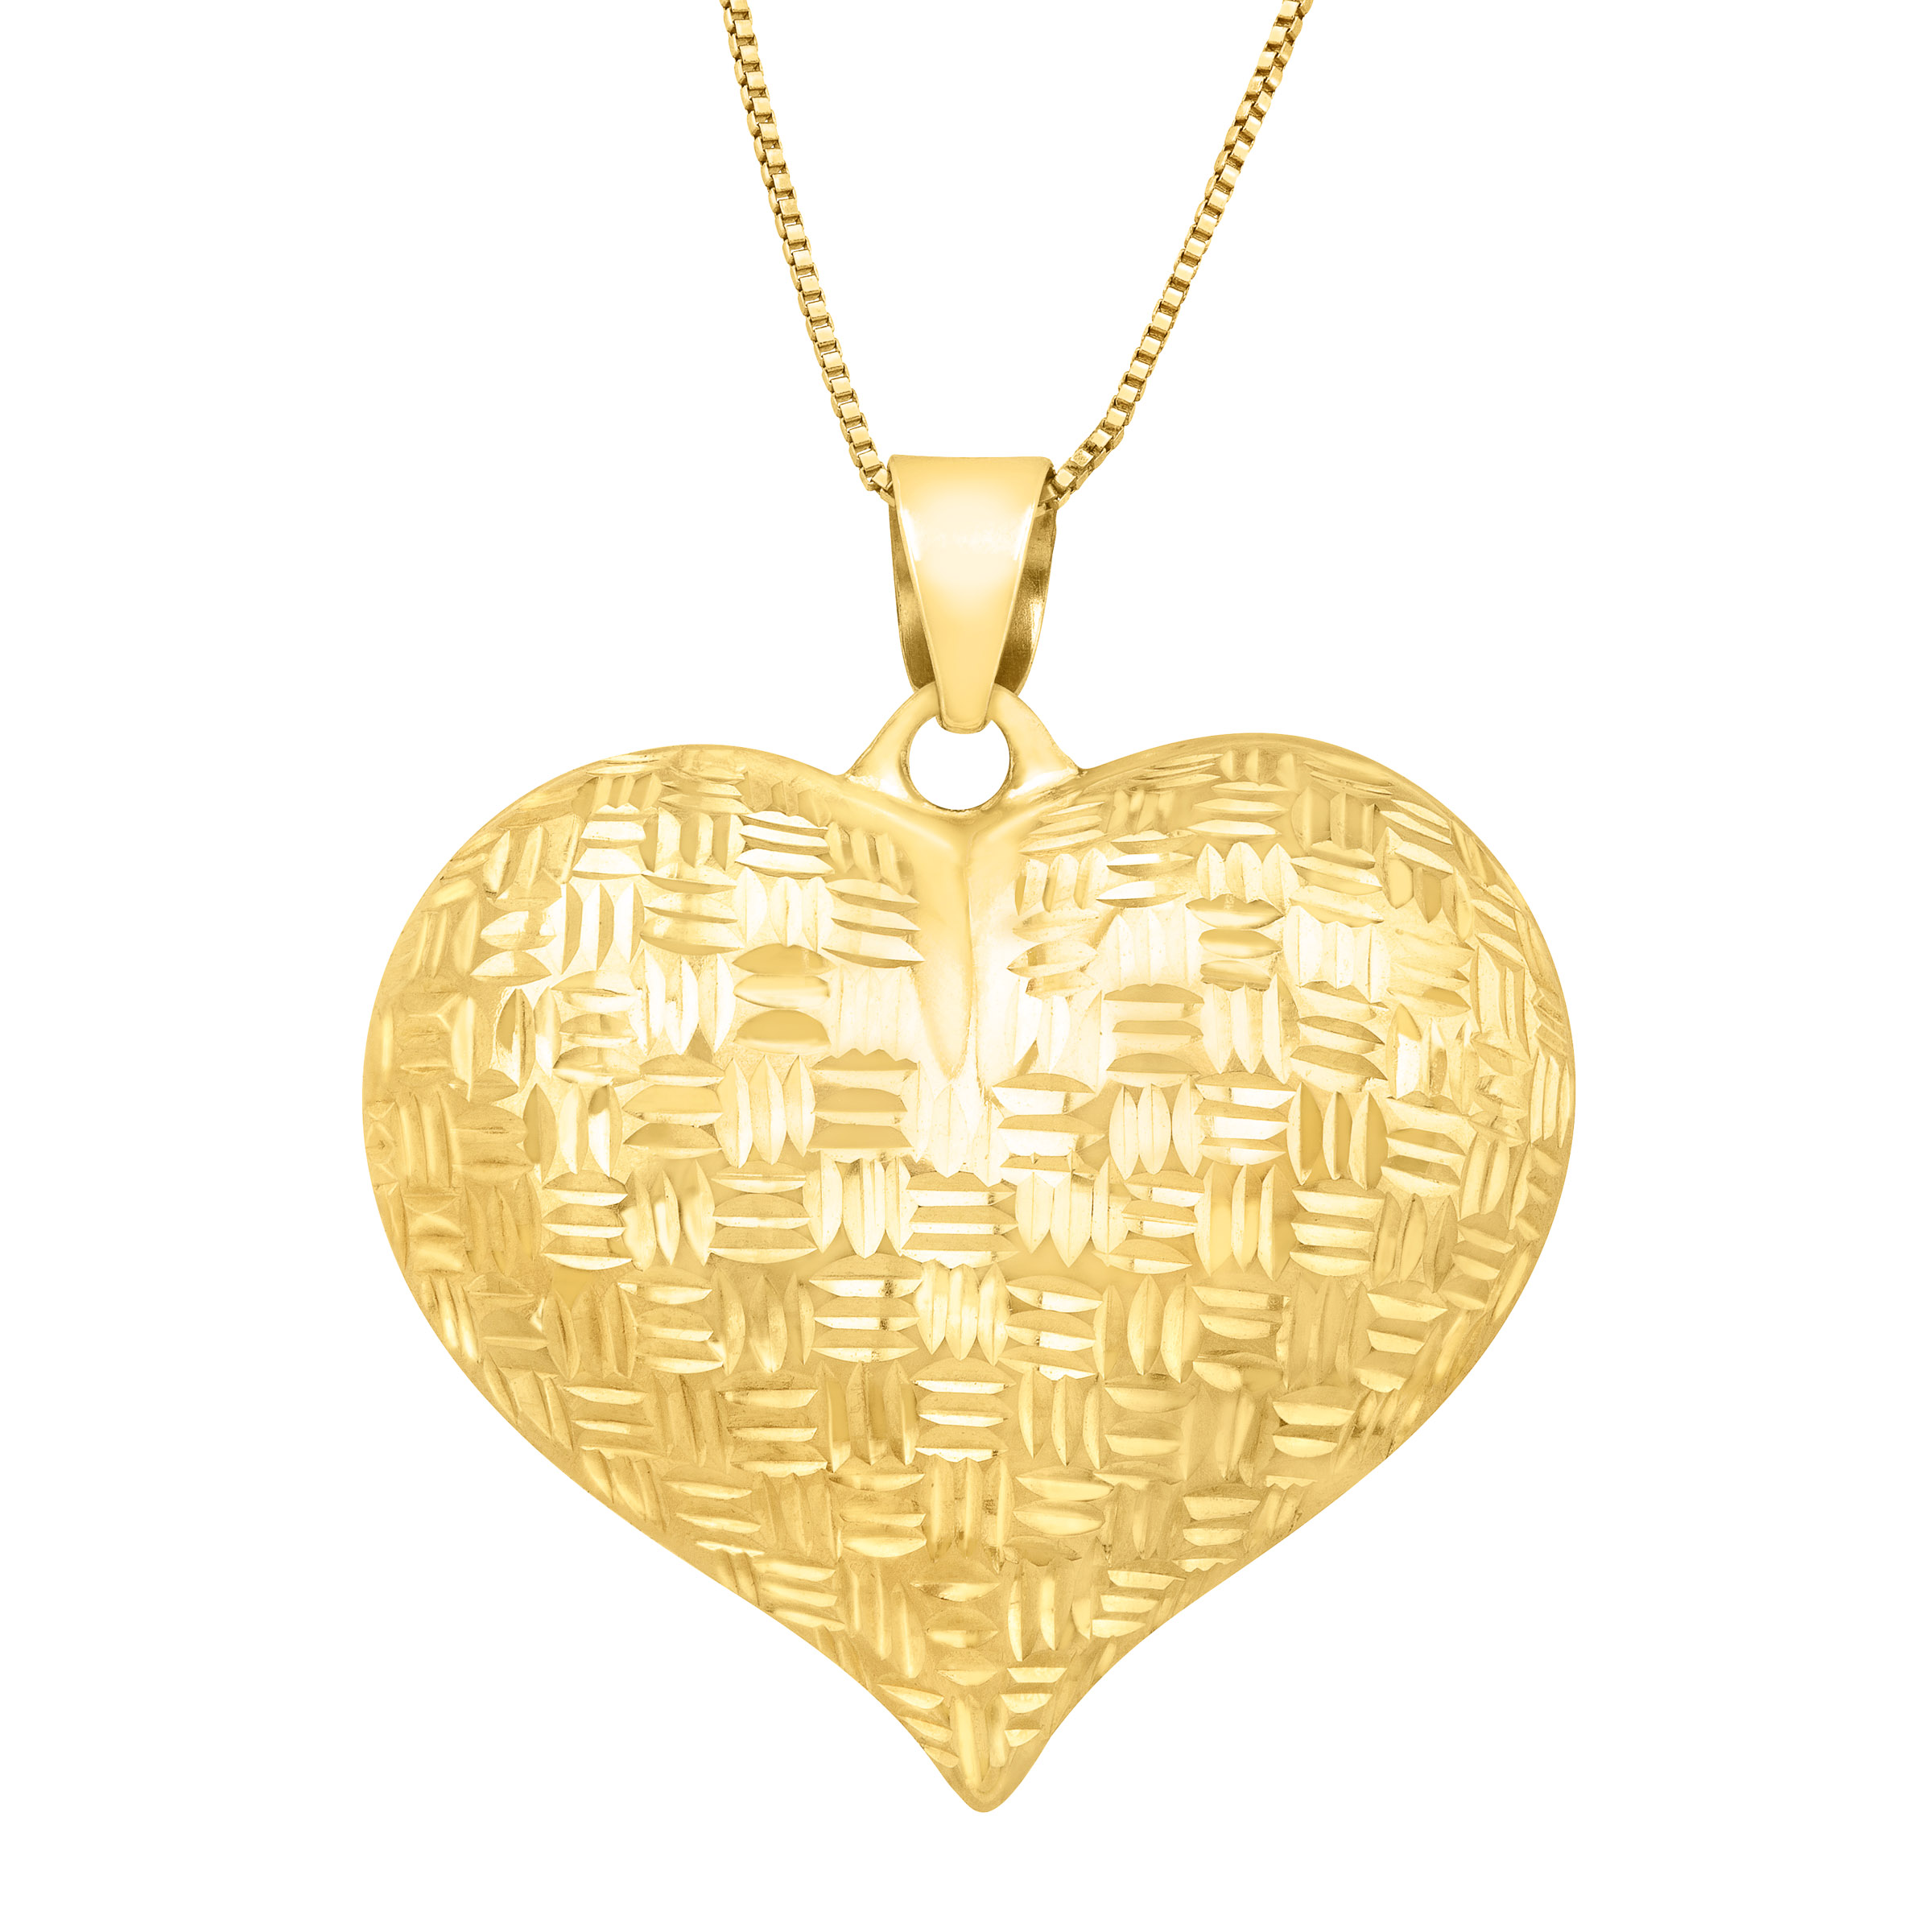 Eternity Gold Puffed Heart Pendant Necklace in 14kt Gold